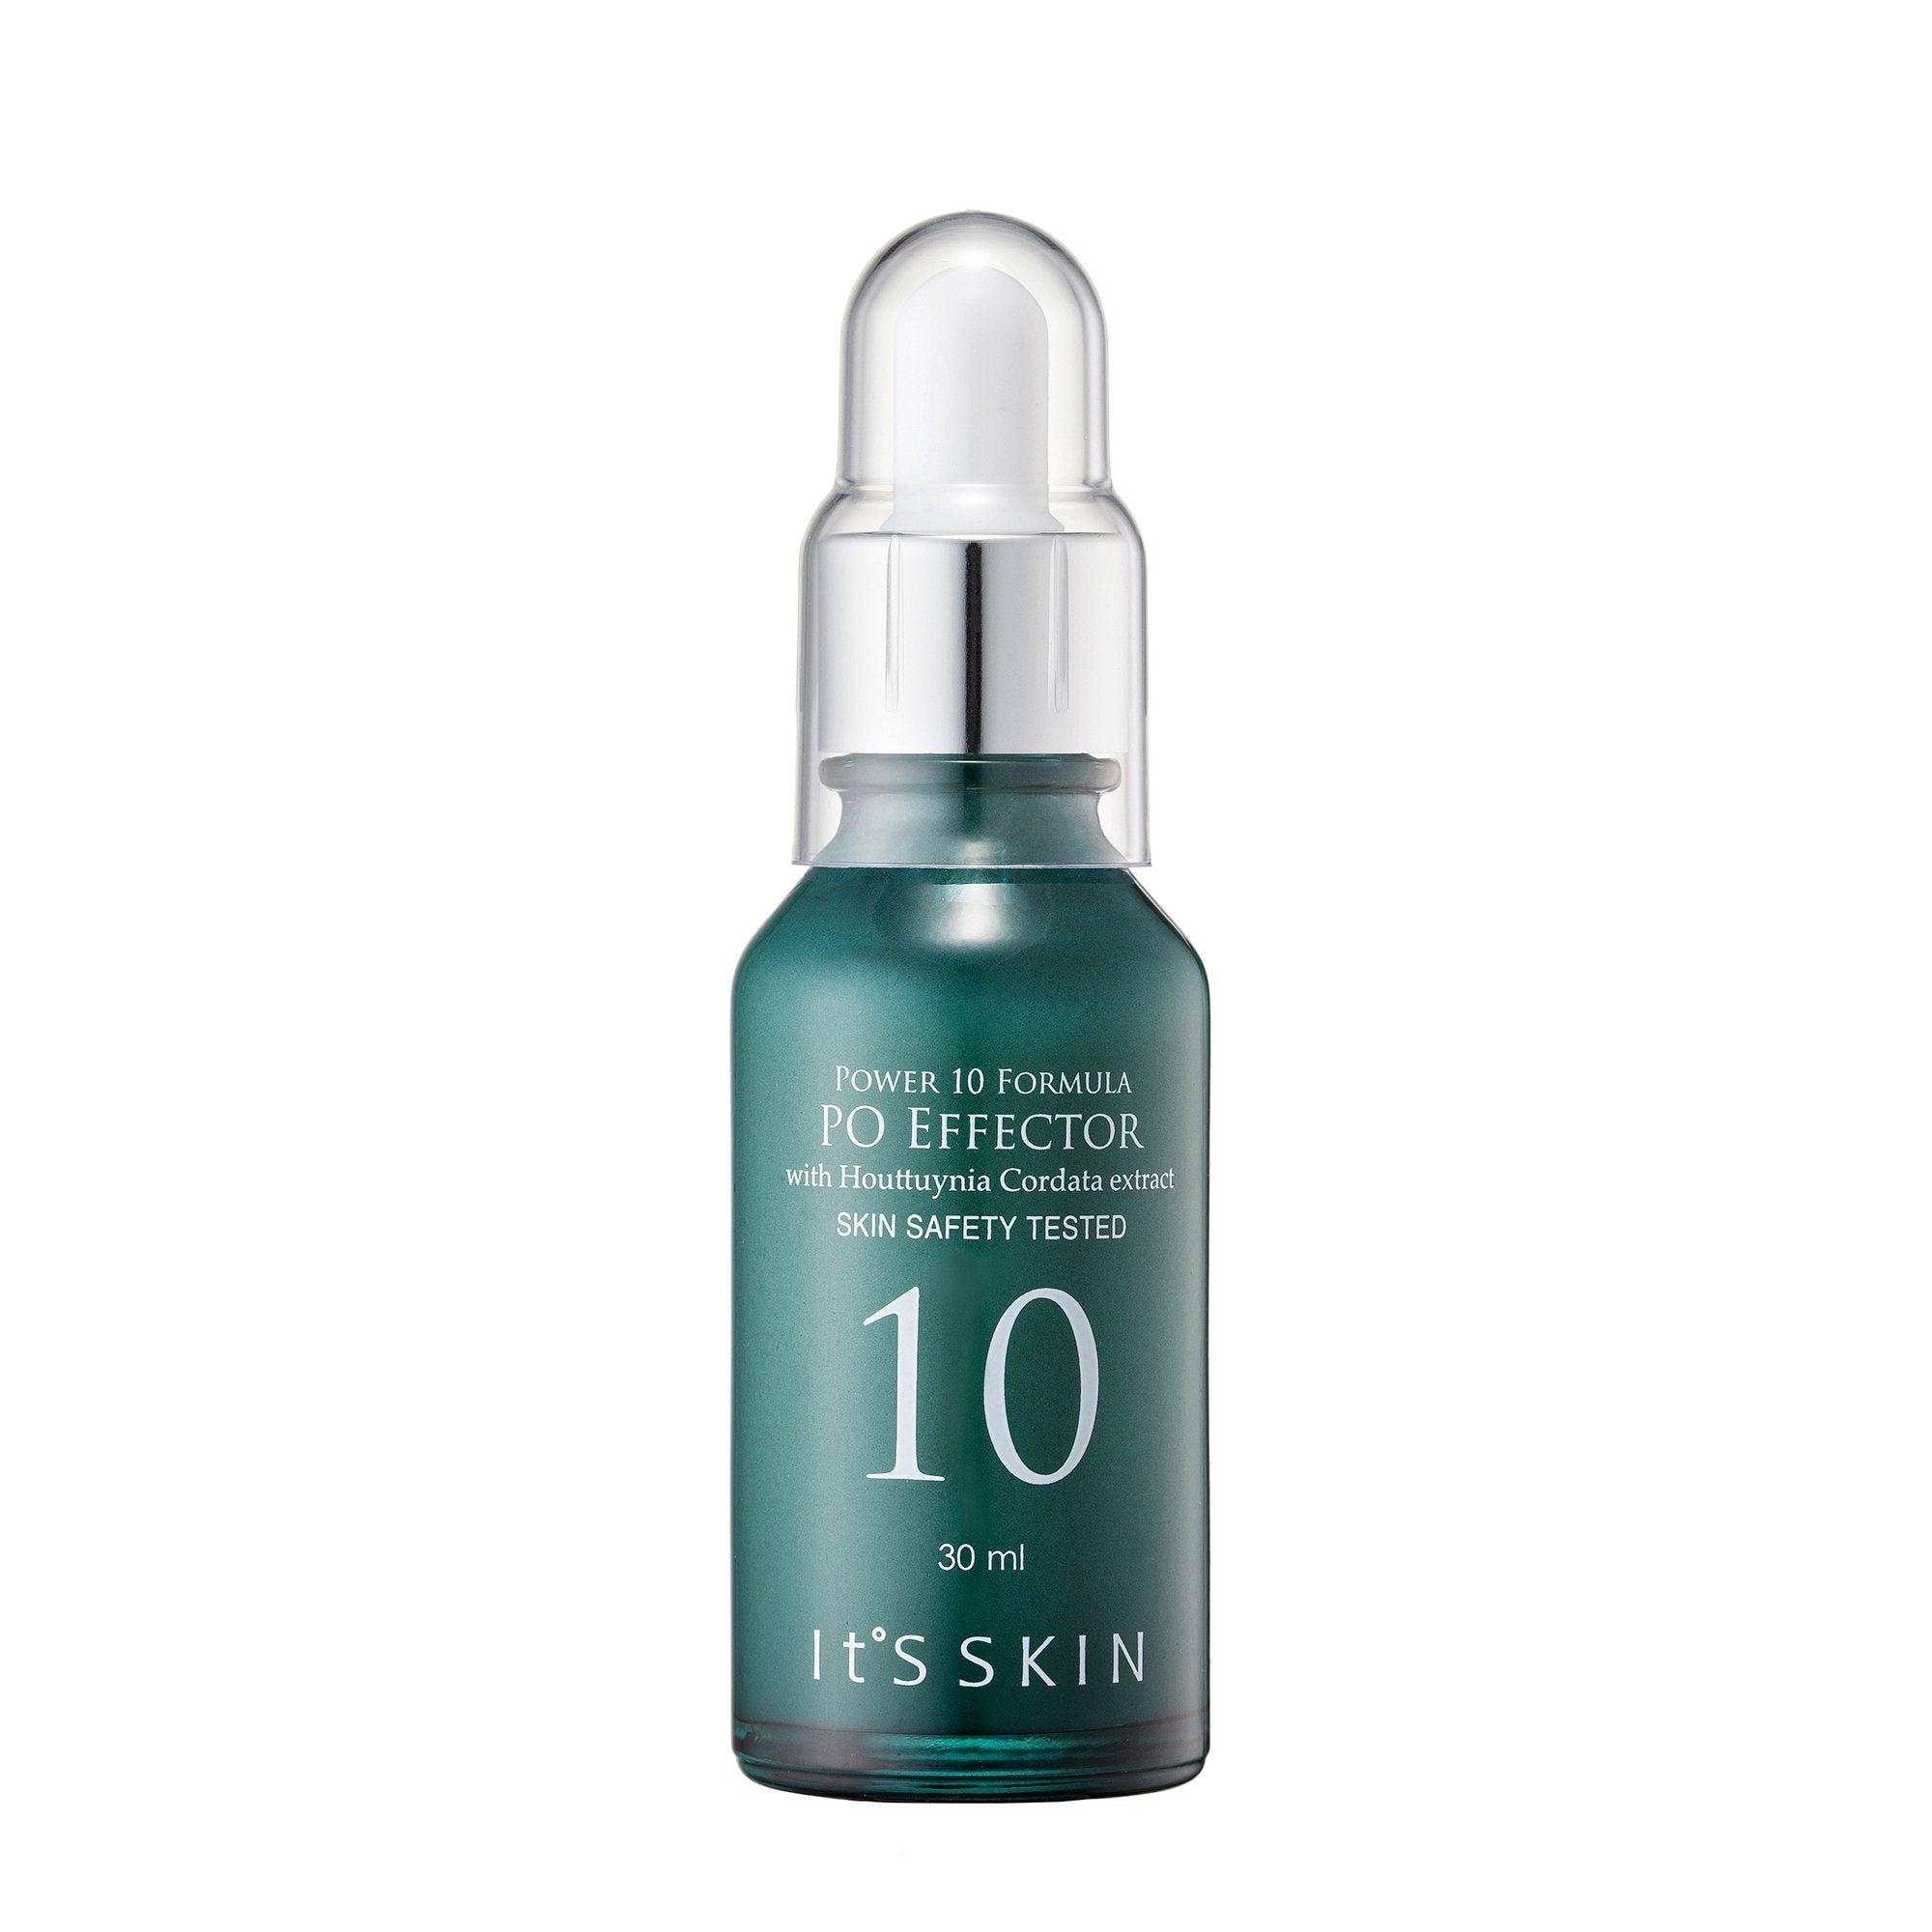 Health & Beauty > Personal Care > Cosmetics > Skin Care > Lotion & Moisturizer - Power 10 Formula PO Effector Serum Do Twarzy 30 Ml